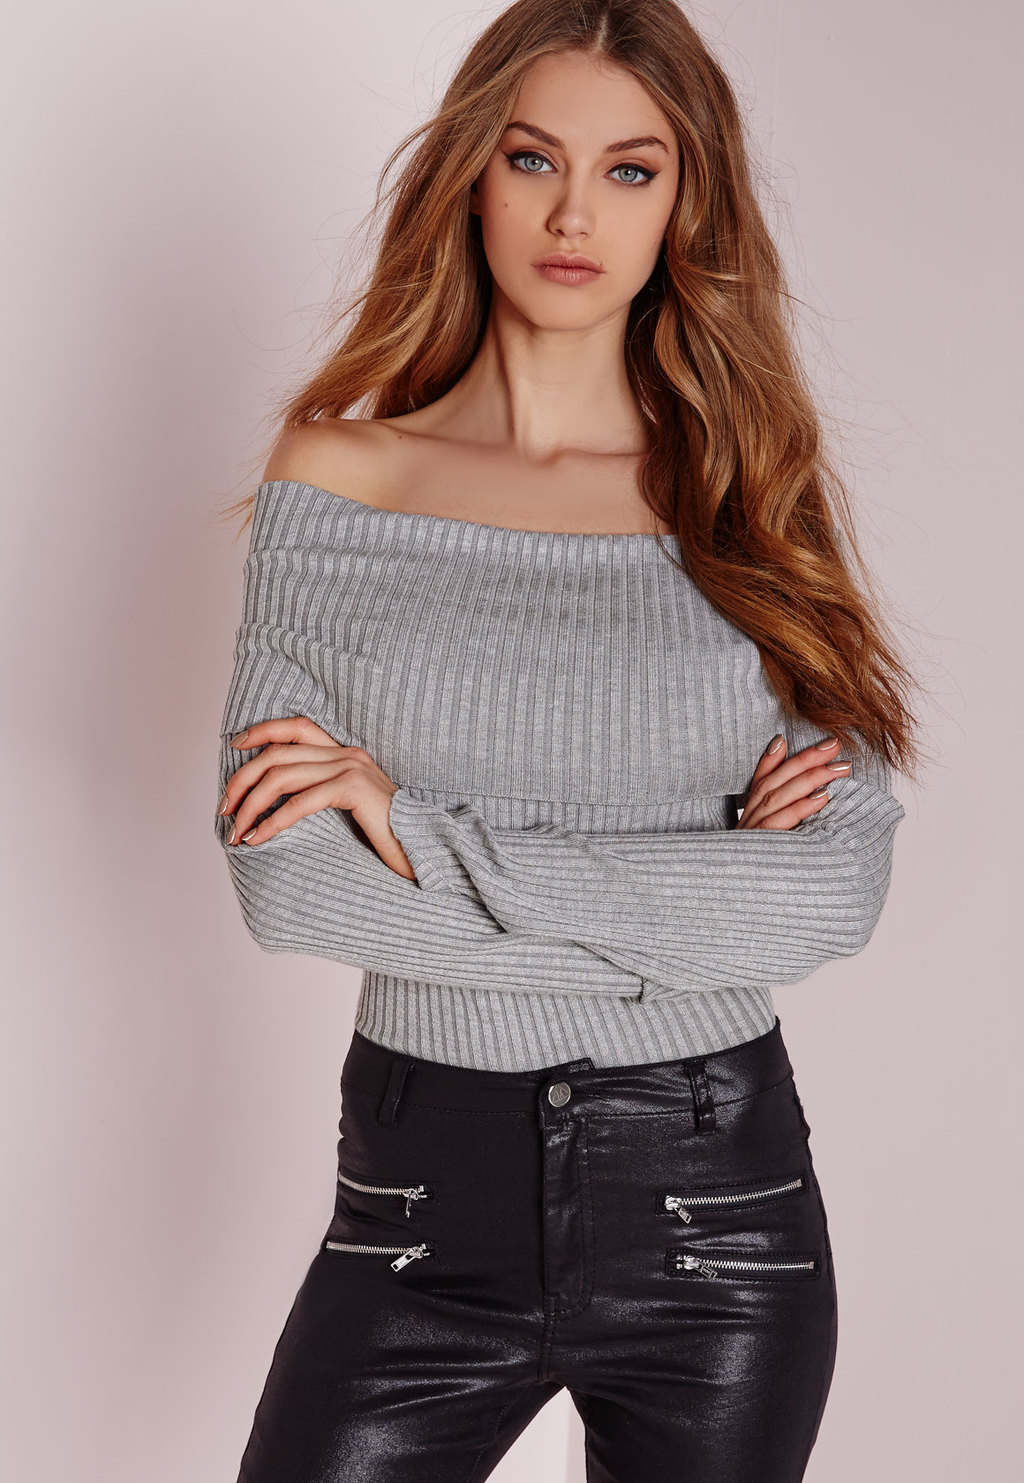 Bardot Ribbed Bodysuit Grey, Grey - neckline: off the shoulder; pattern: plain; predominant colour: light grey; occasions: casual; length: standard; style: top; fibres: viscose/rayon - stretch; fit: tight; sleeve length: long sleeve; sleeve style: standard; texture group: jersey - clingy; pattern type: fabric; season: a/w 2015